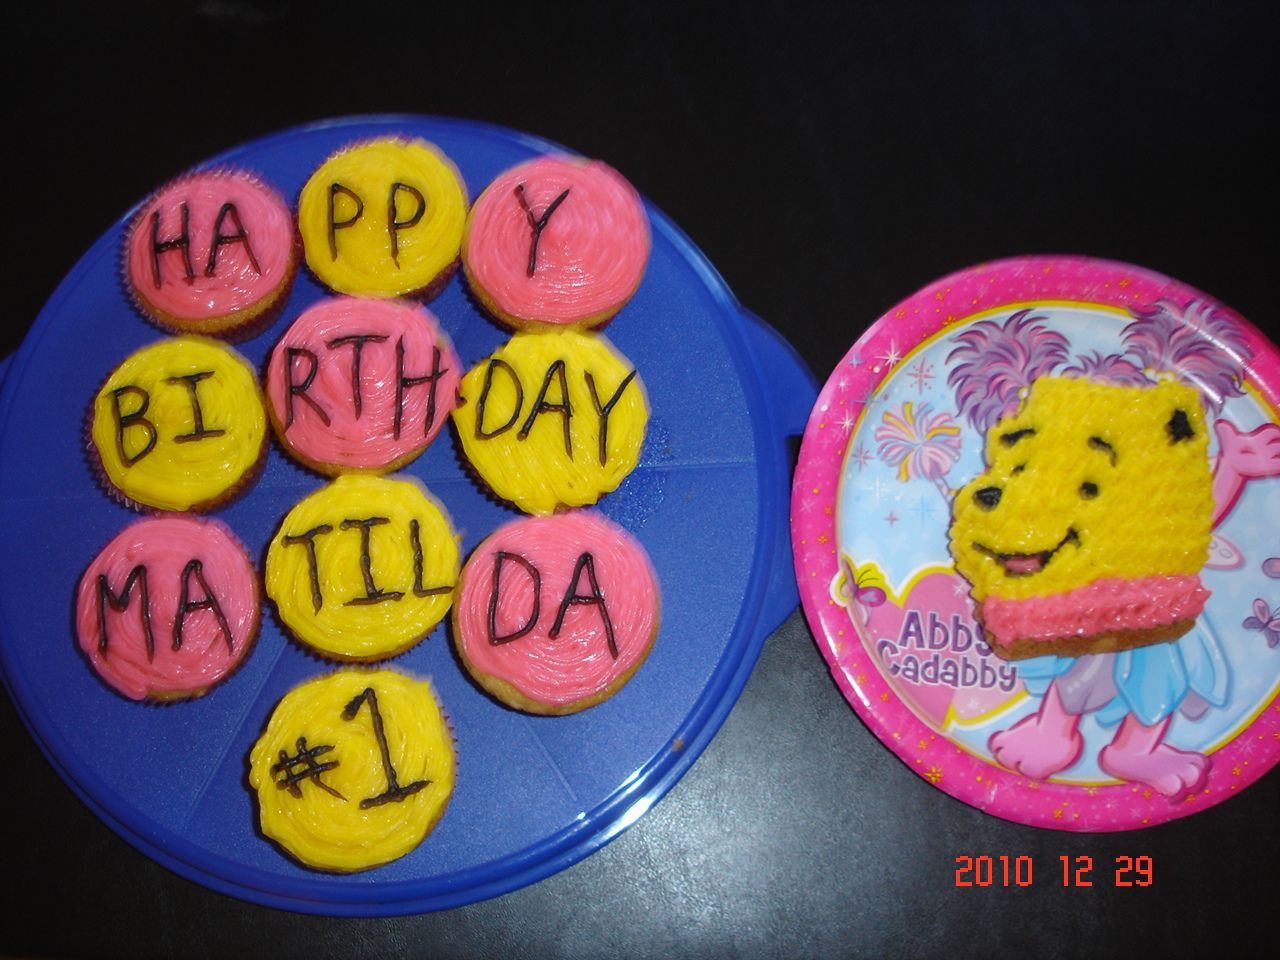 Tillys 1st Birthday Cake And Cupcakes The Little Winnie The Pooh